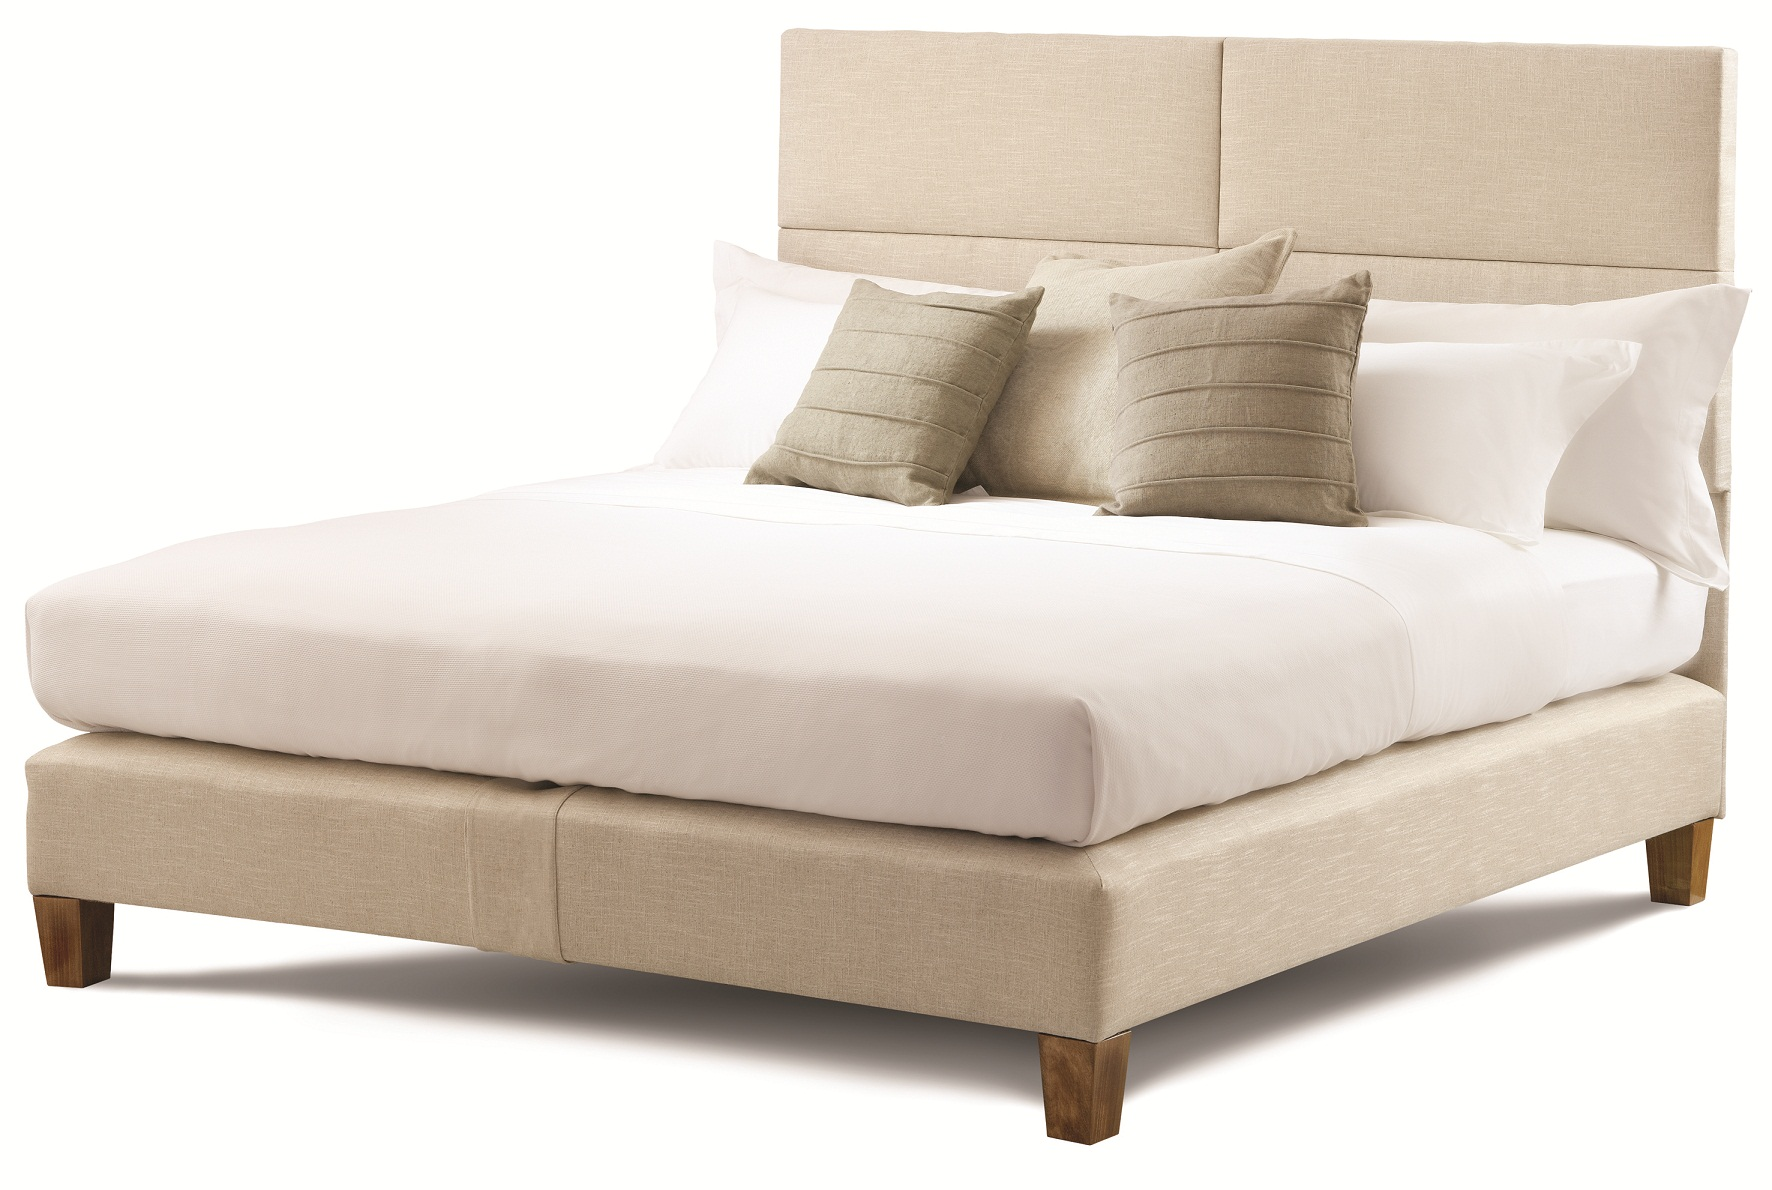 Futon World Berlin Savoir Beds Made To Measure Luxury Beds Luxuriousprototype